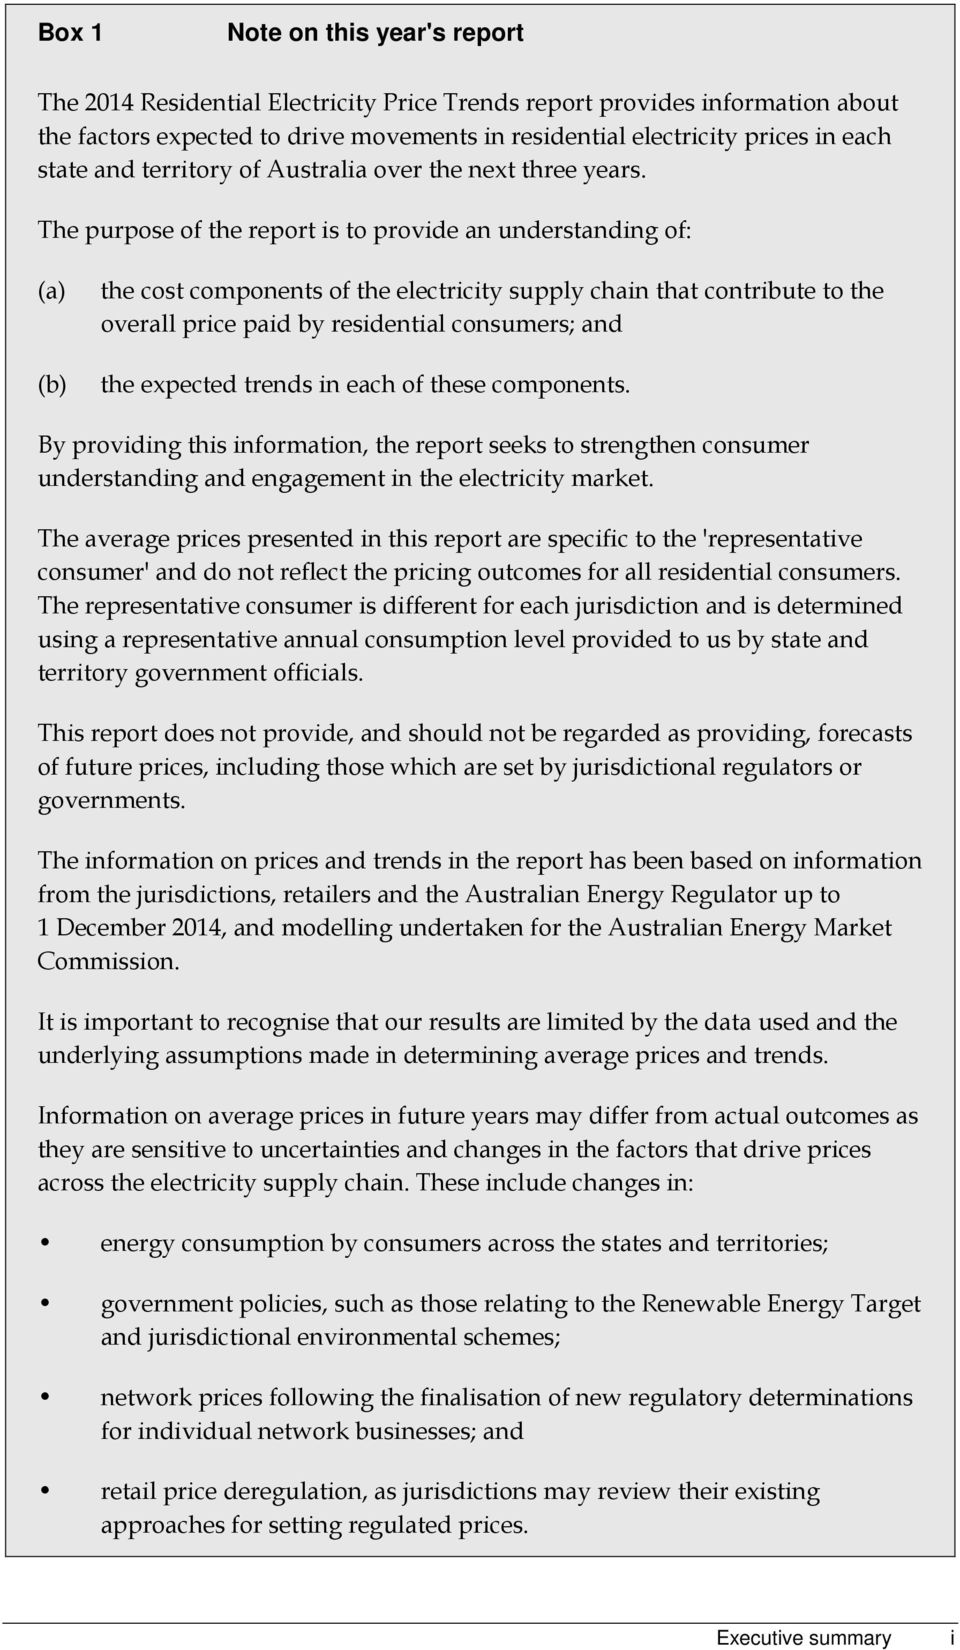 The purpose of the report is to provide an understanding of: (a) (b) the cost components of the electricity supply chain that contribute to the overall price paid by residential consumers; and the